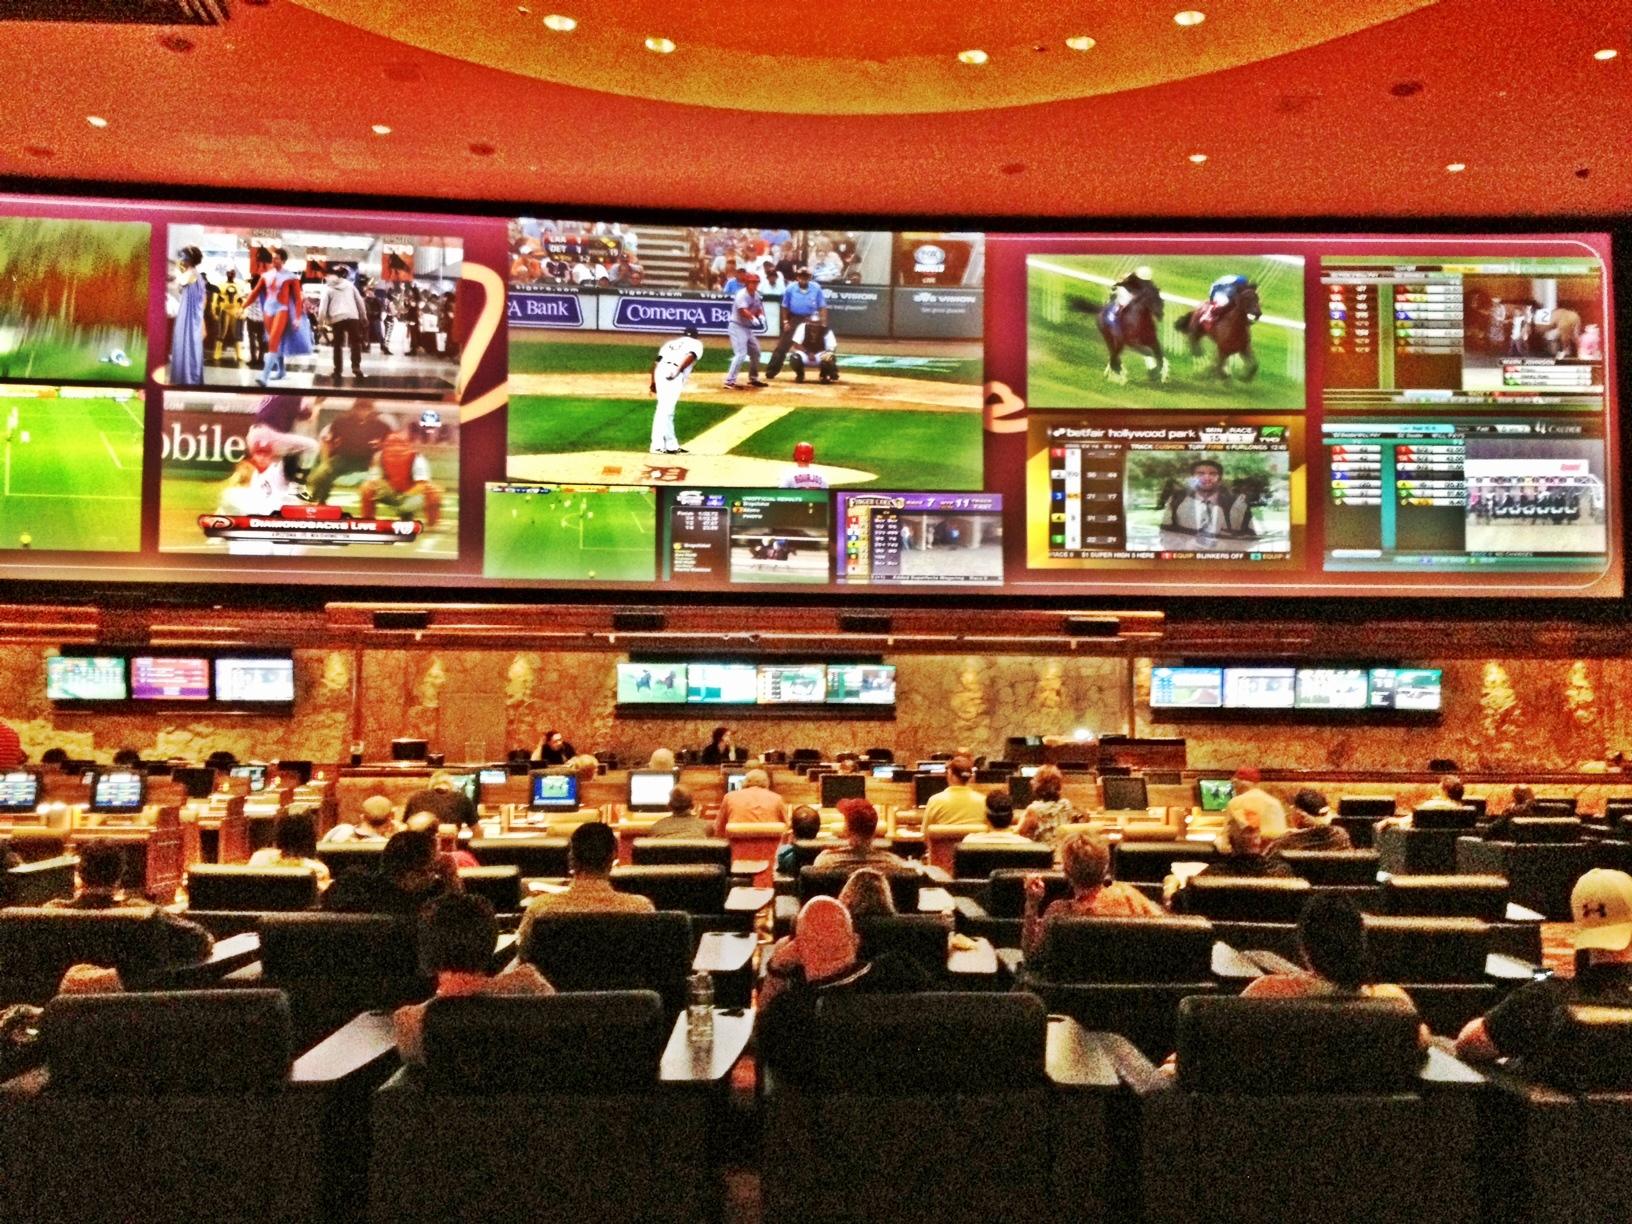 fantasy cup auto racing sportsbook at caesars palace